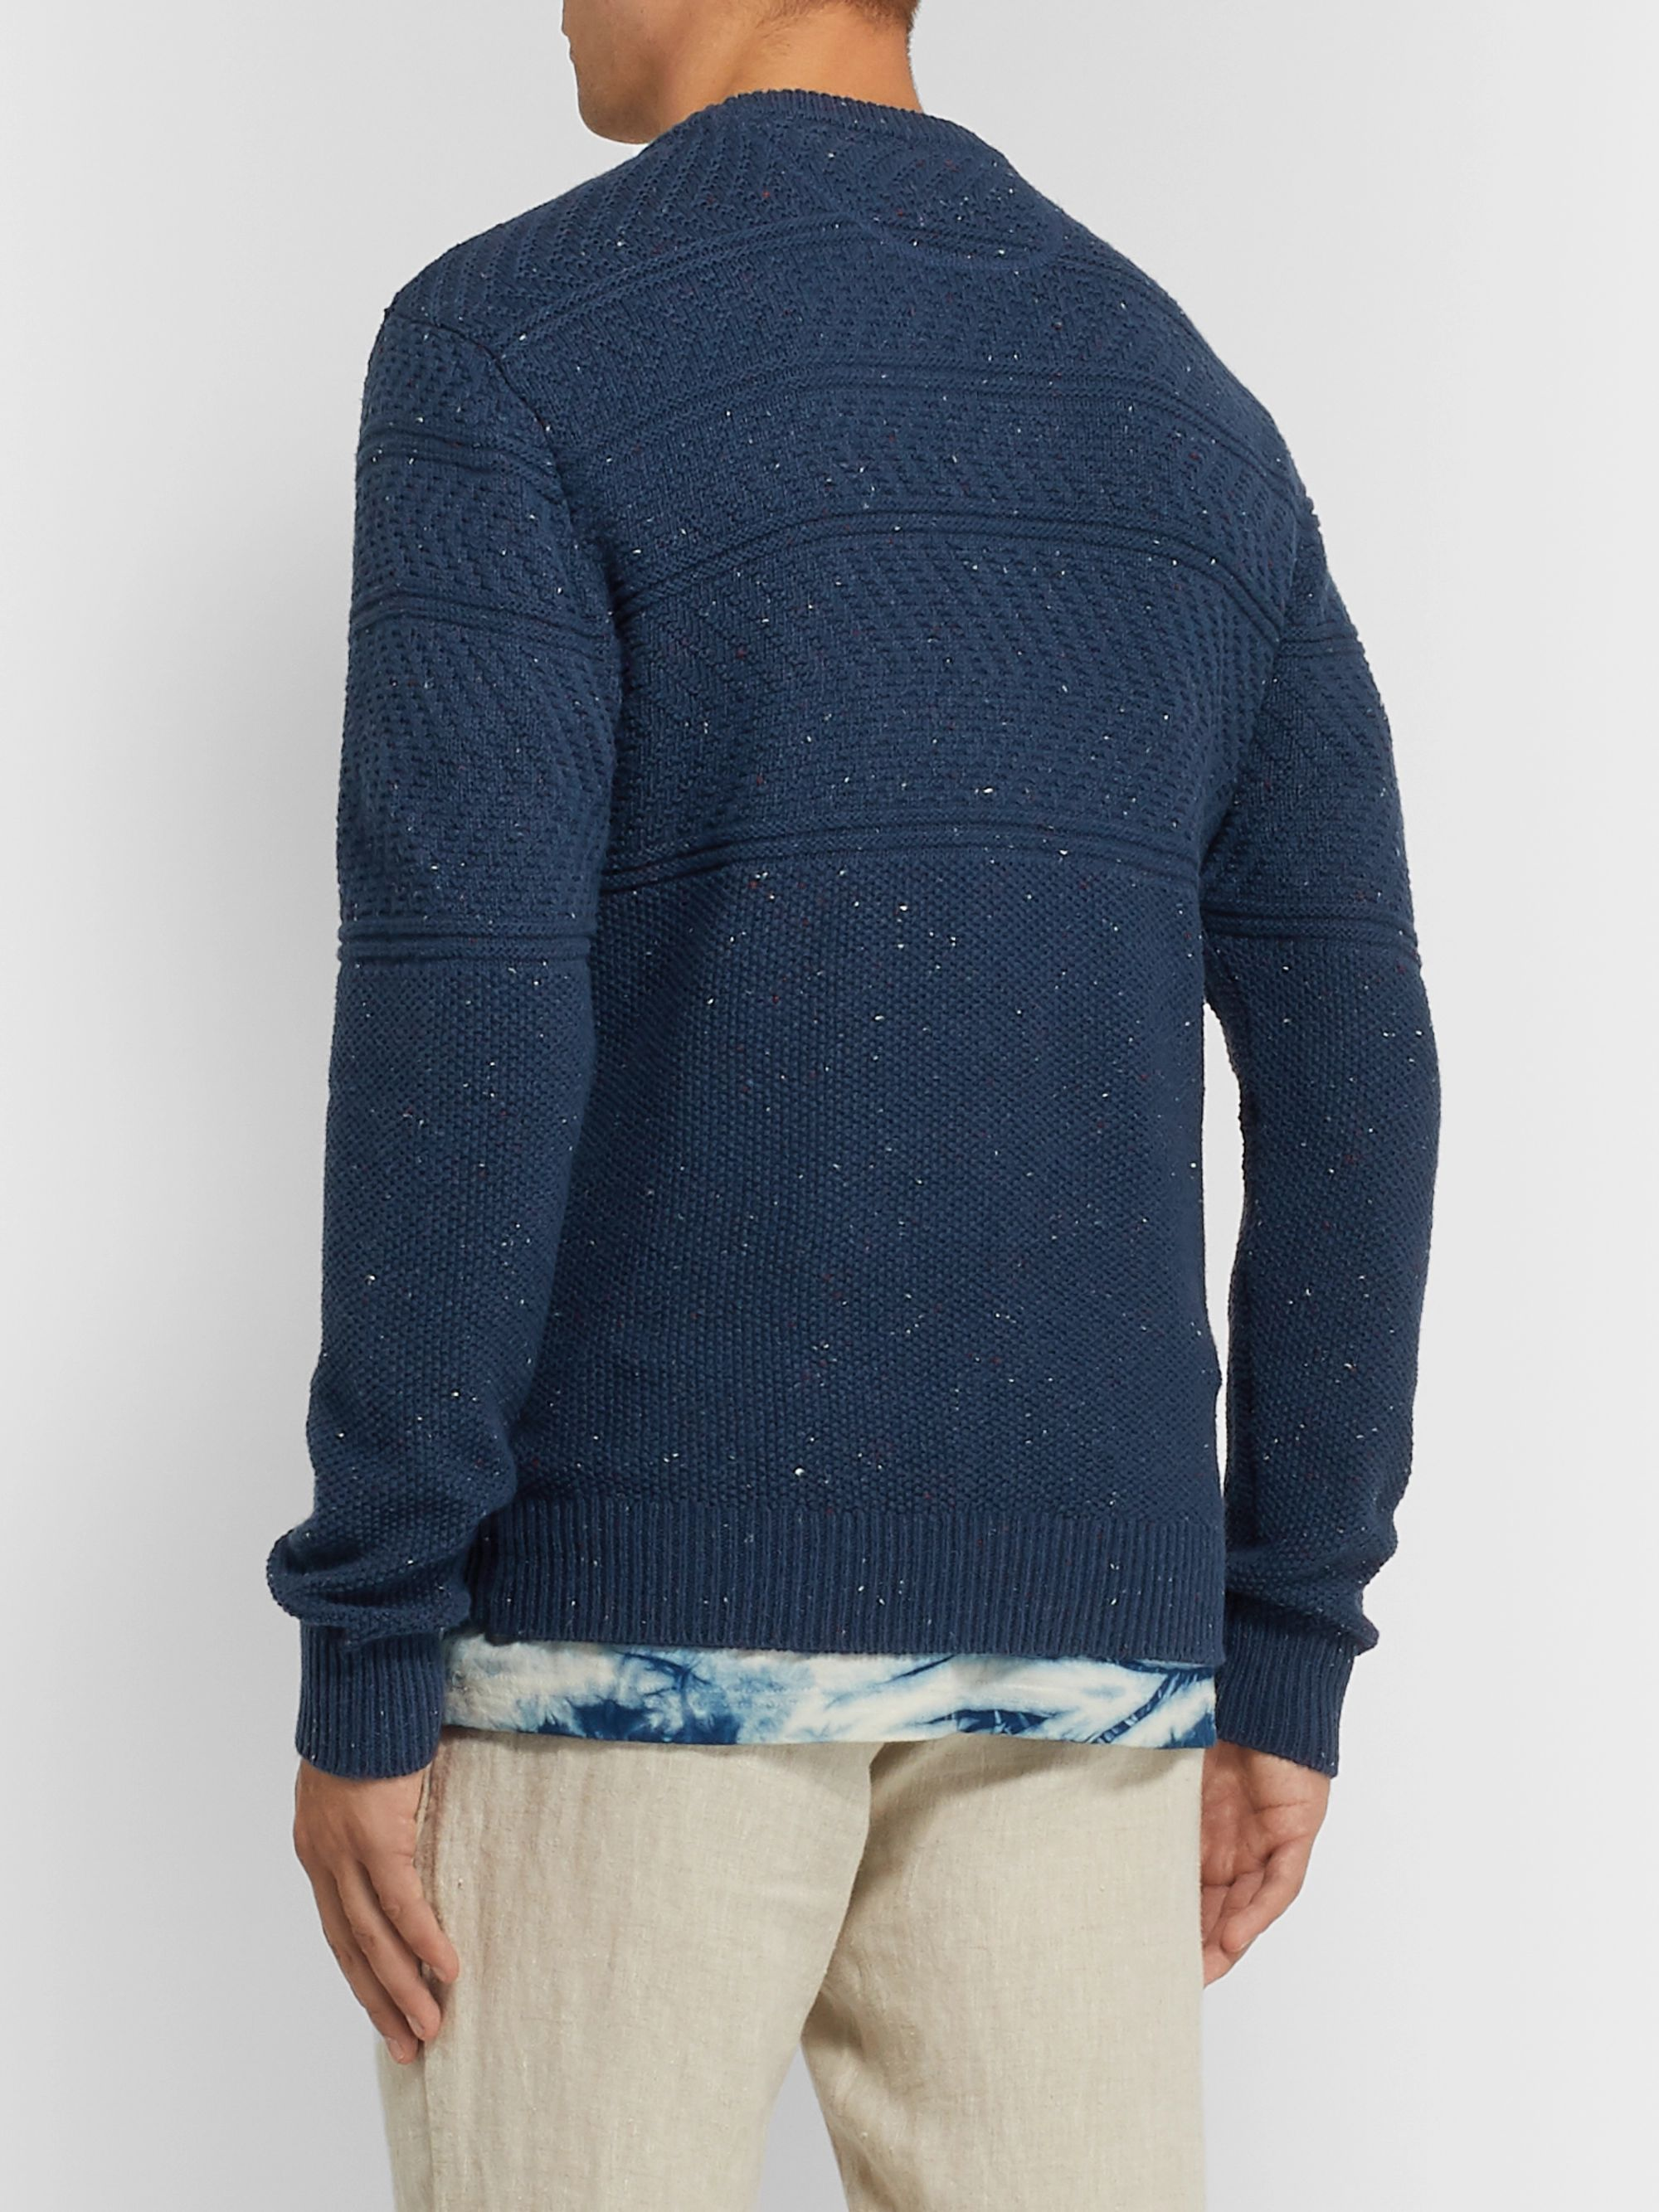 Faherty Guernsey Textured-Knit Cotton-Blend Sweater